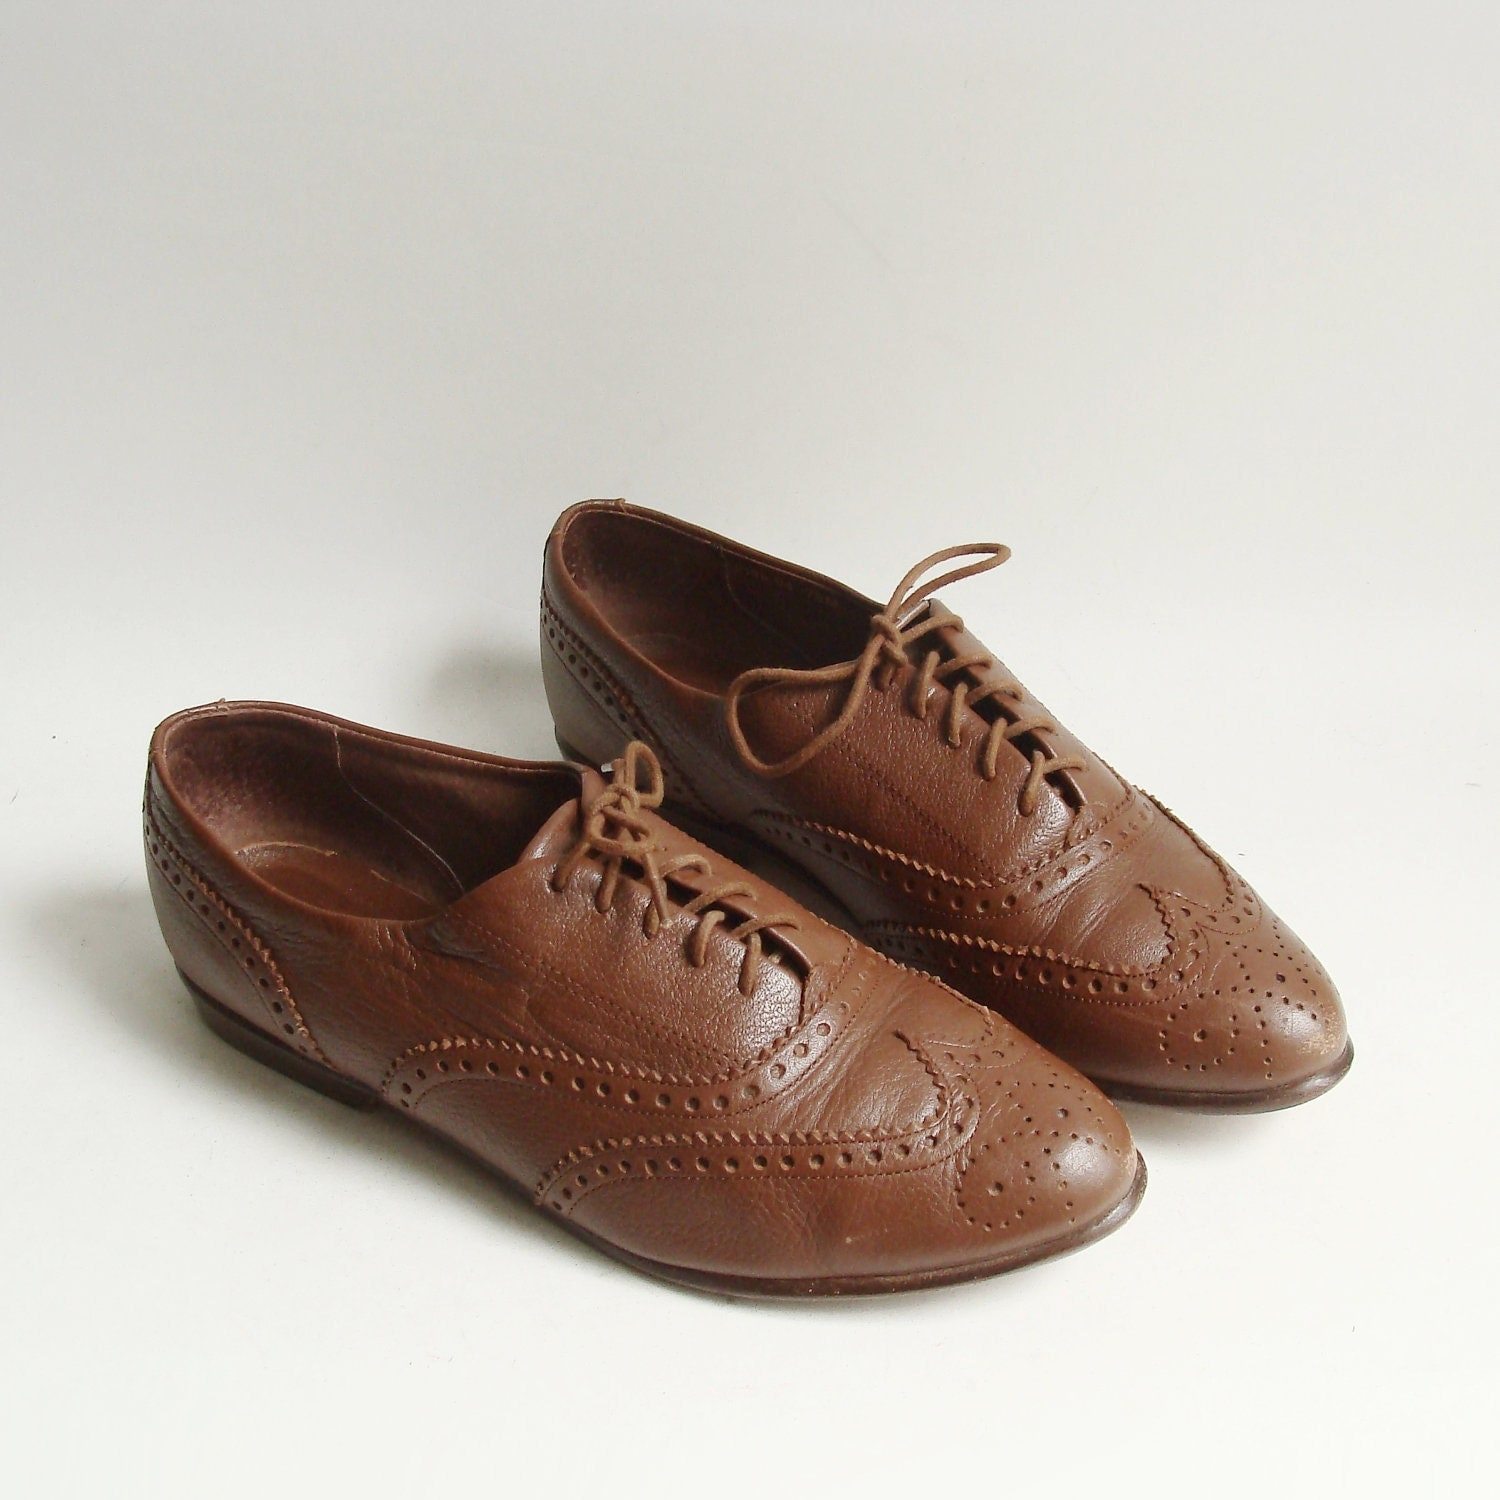 Leather Shoes Made In Brazil